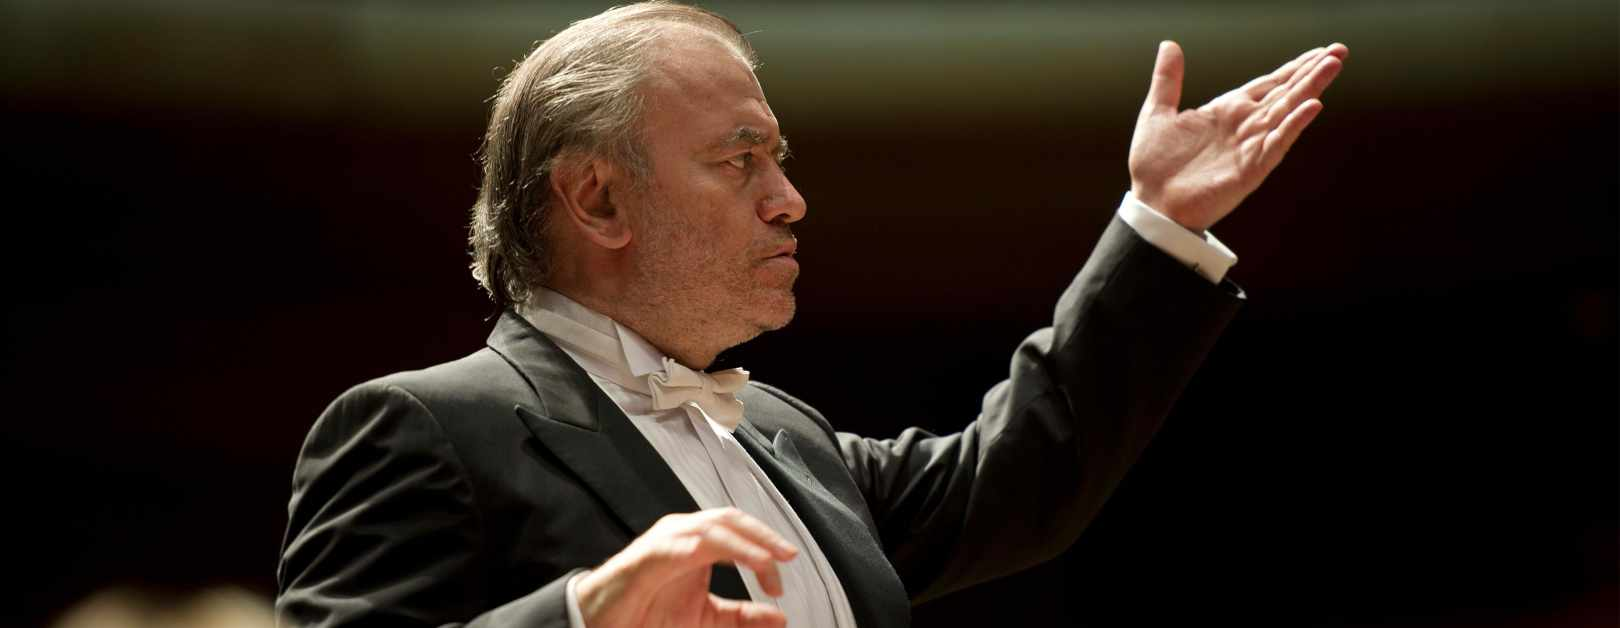 Gergiev Conducts Rachmaninoff and Stravinsky